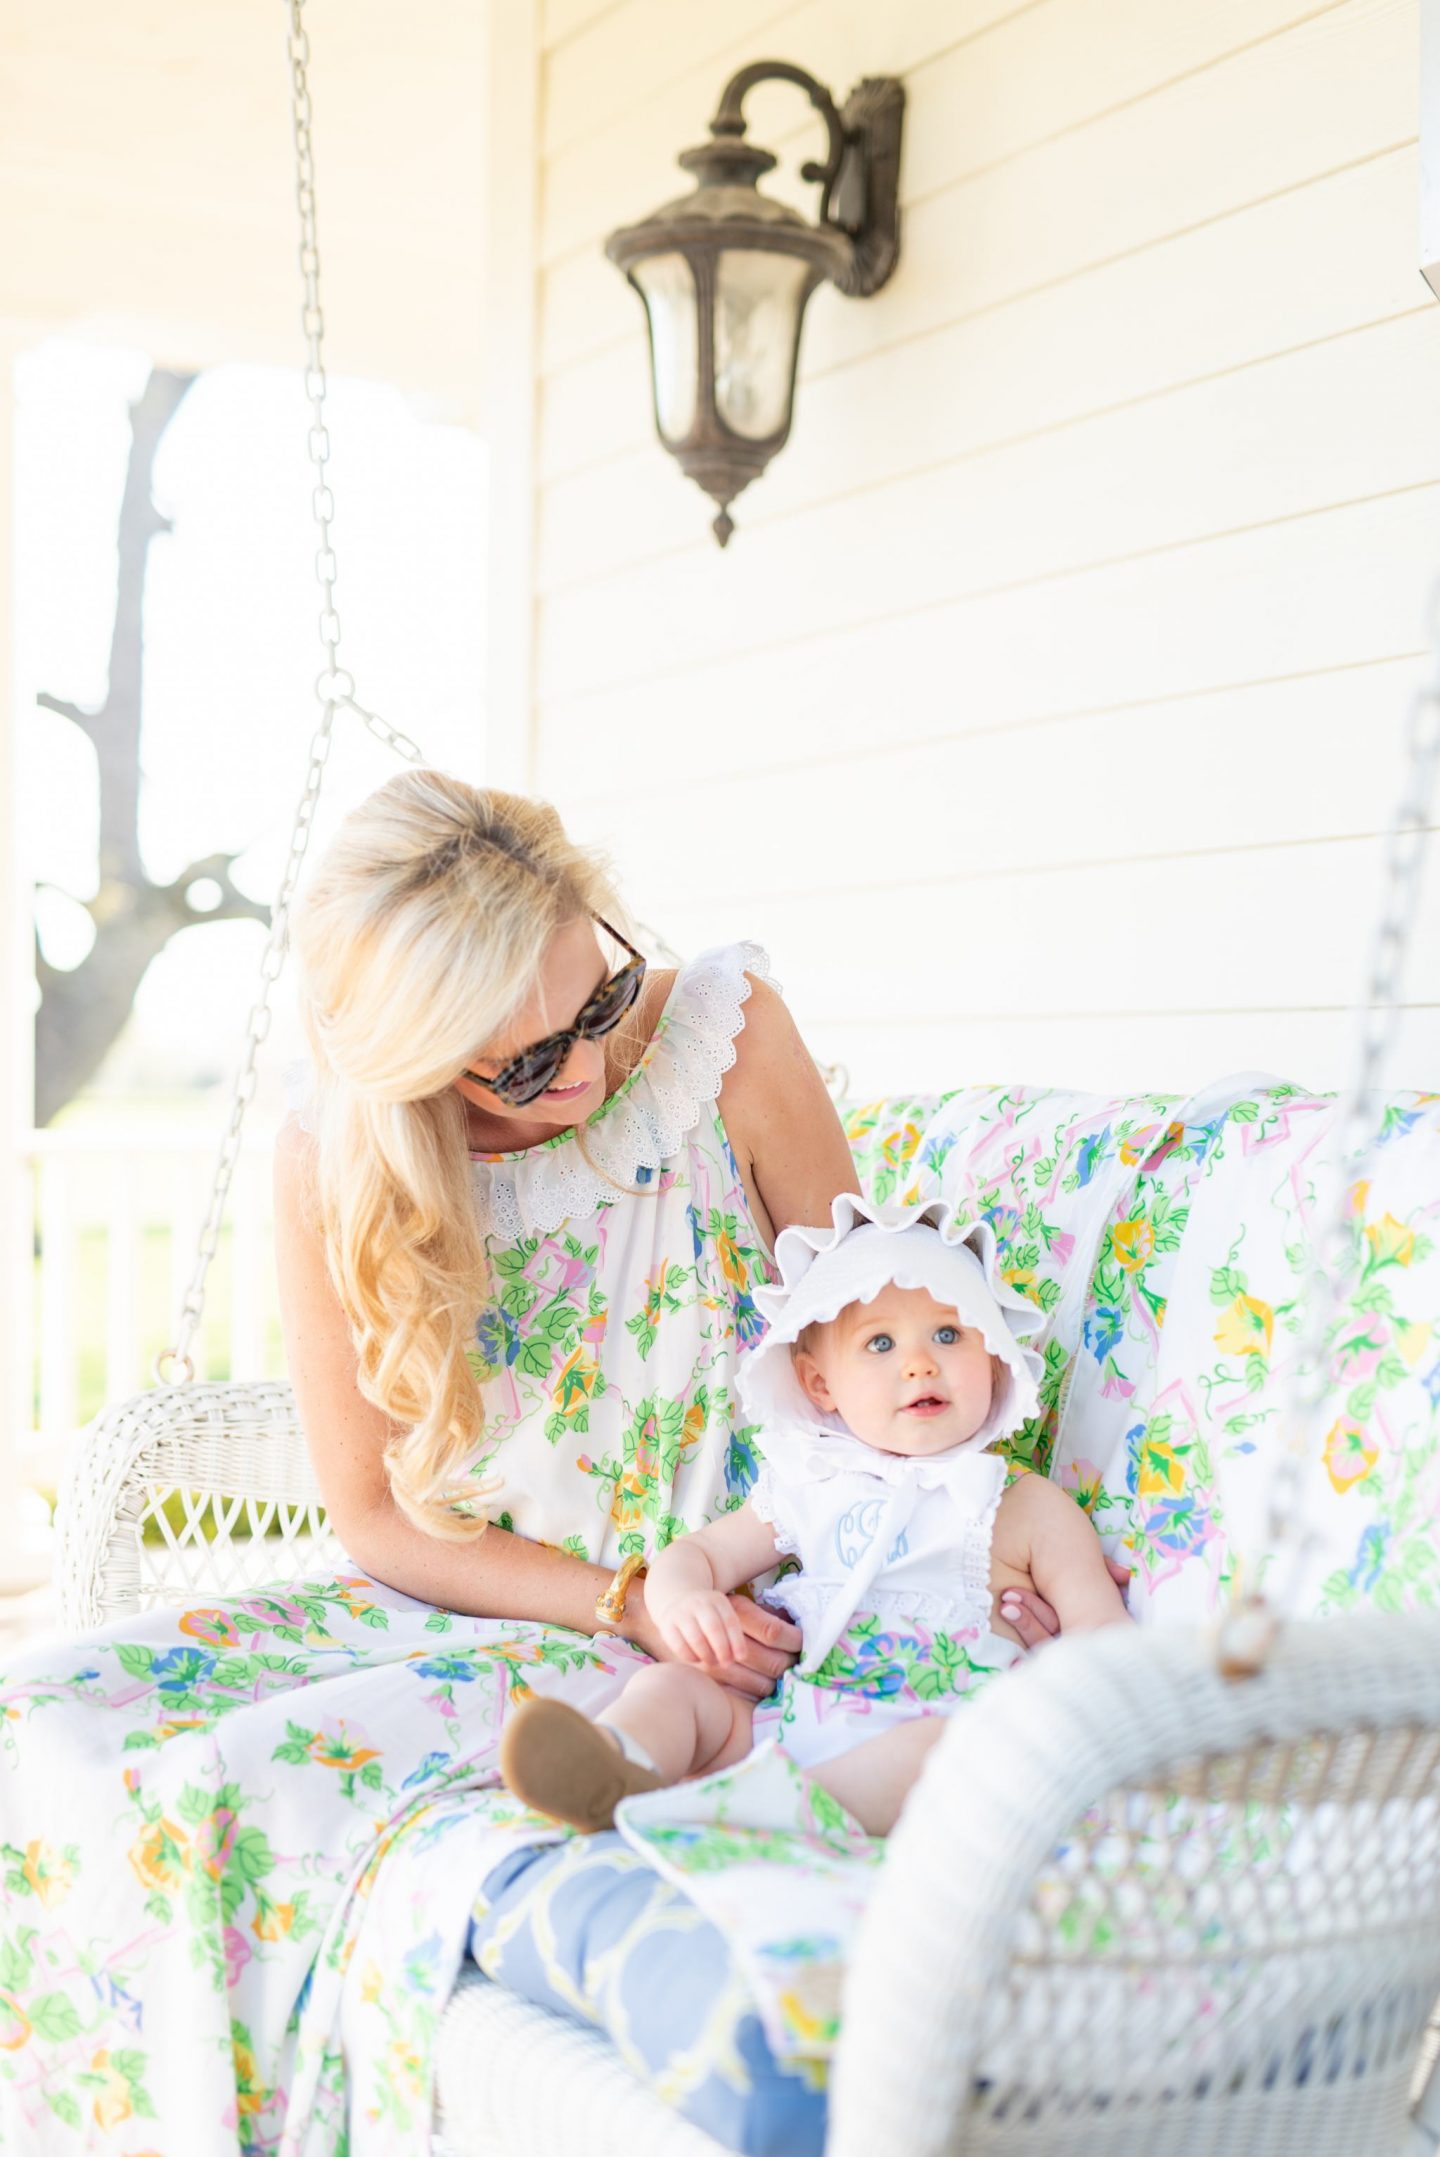 mom with blonde hair and daughter in a sunset and bonnet sitting on swing on a white front porch